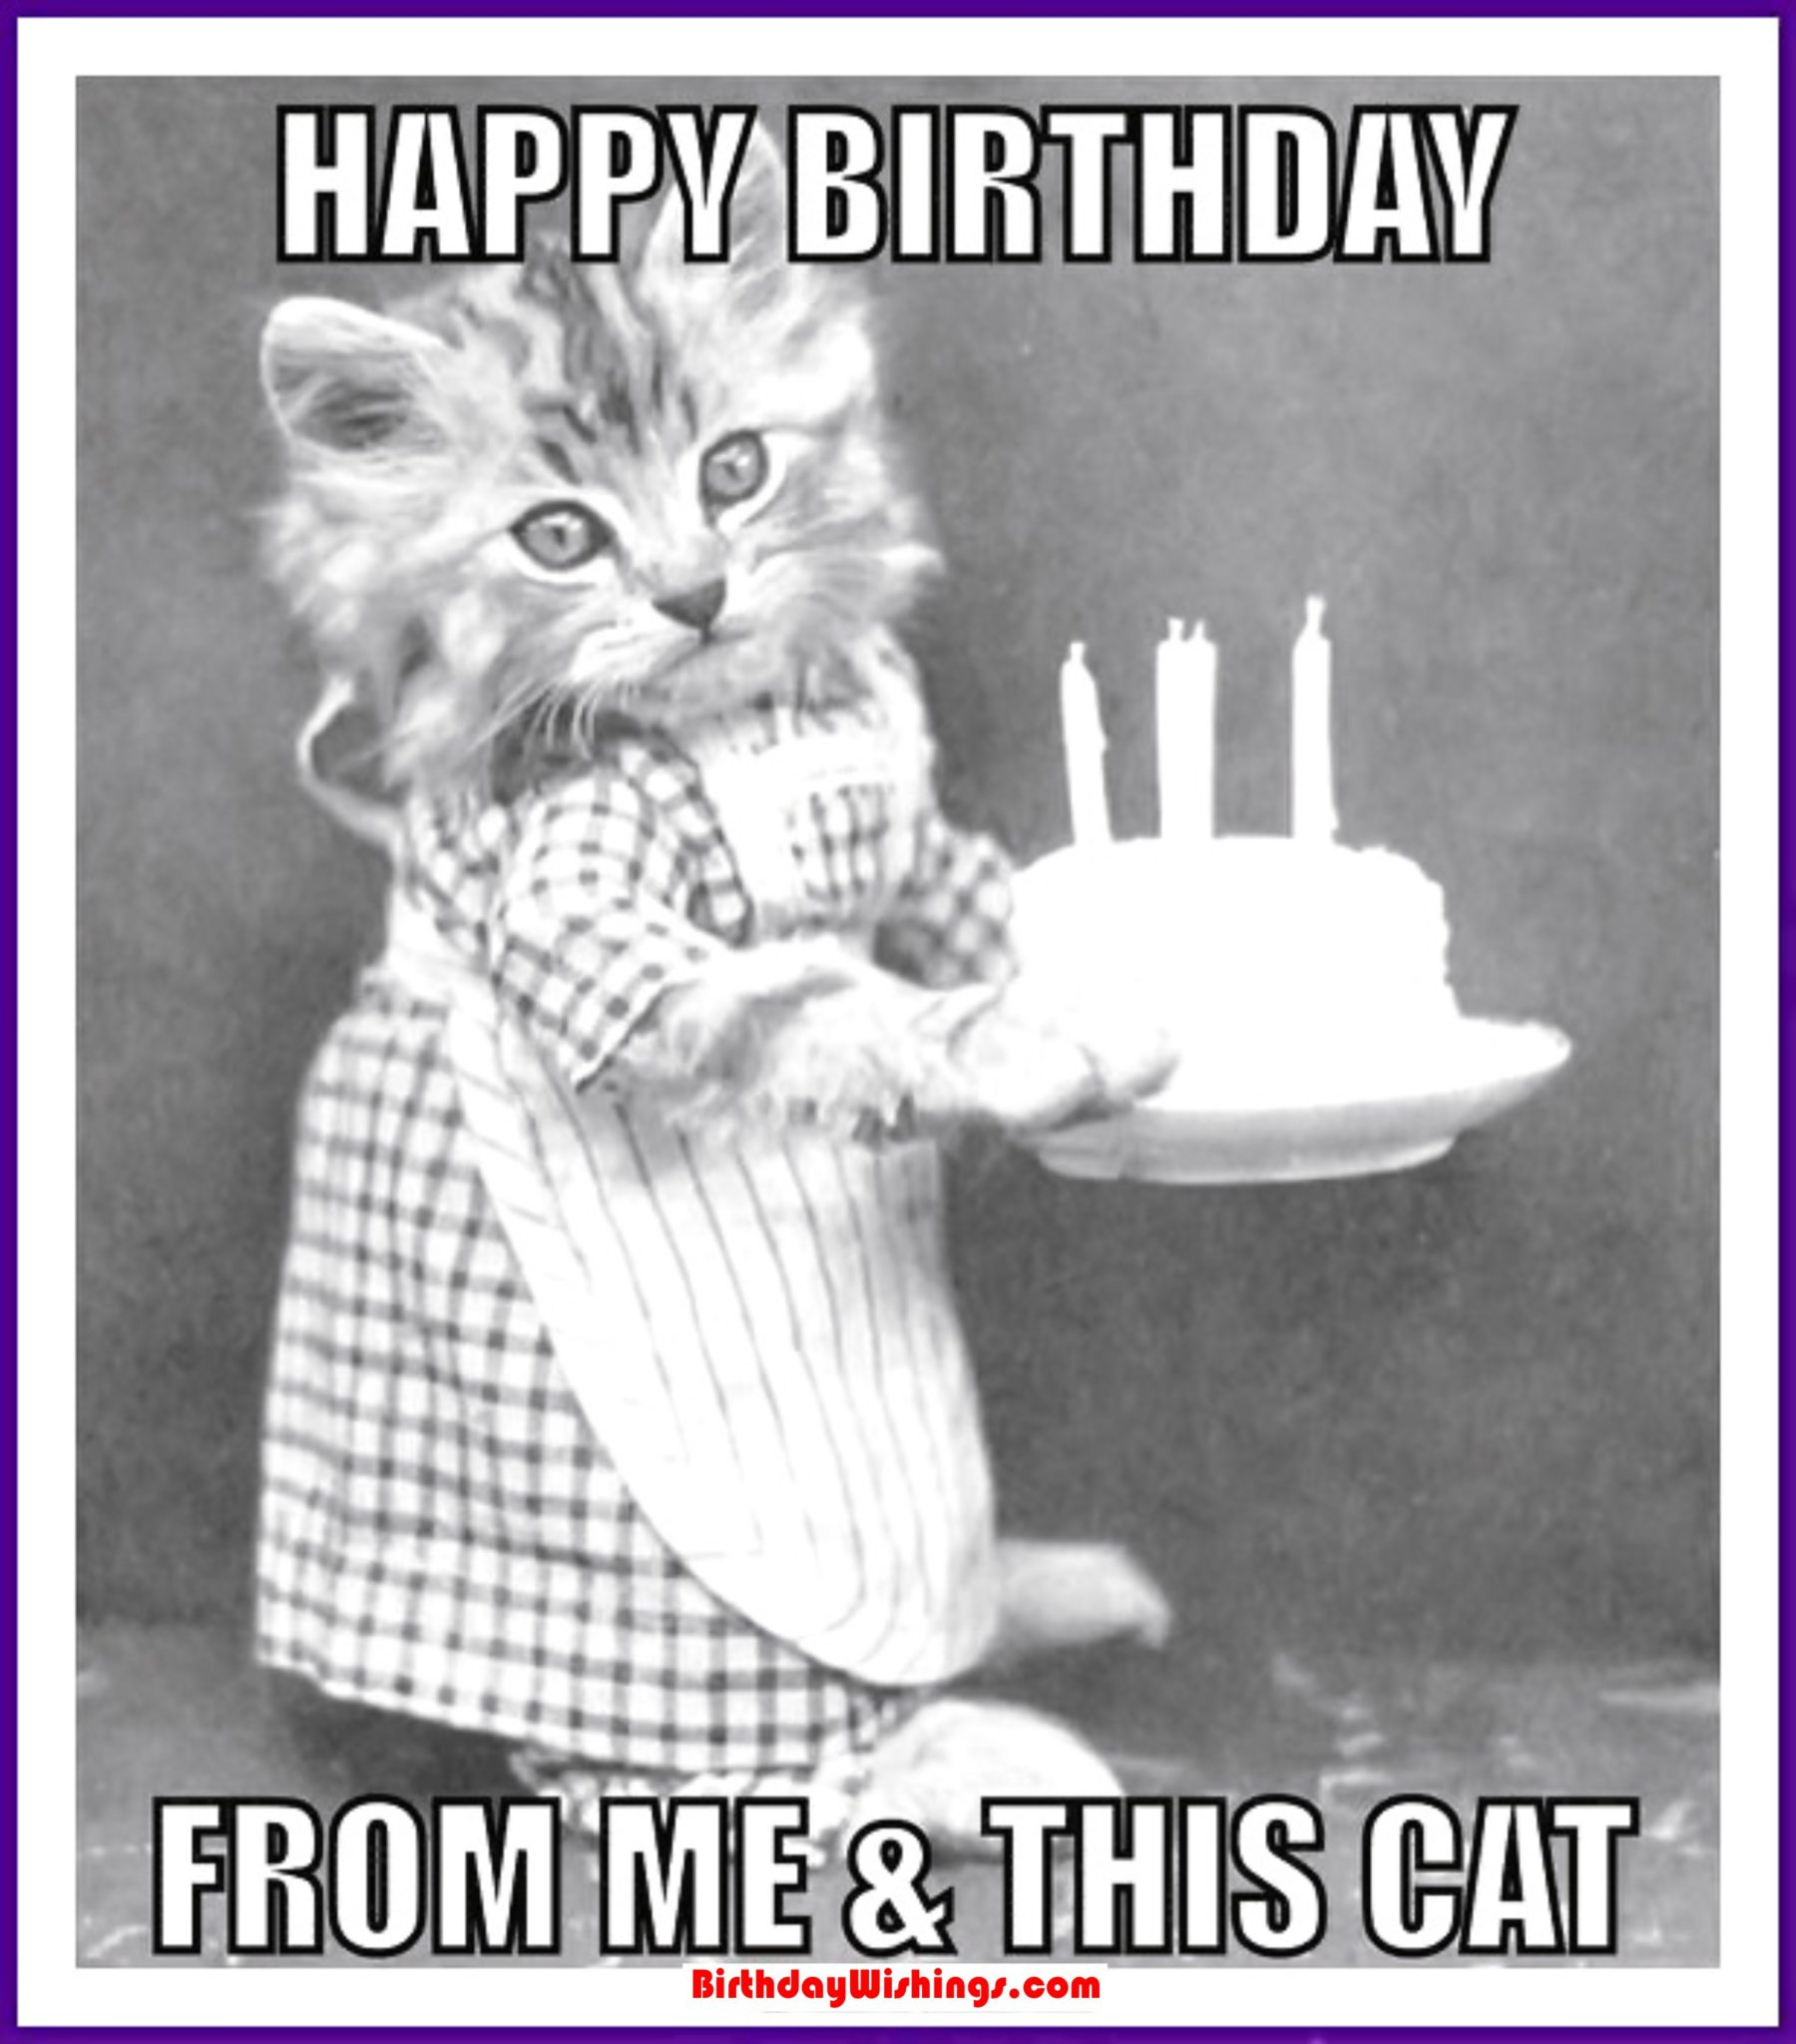 78?resize=1160%2C1320 funny happy birthday memes with cats, dogs & funny animals